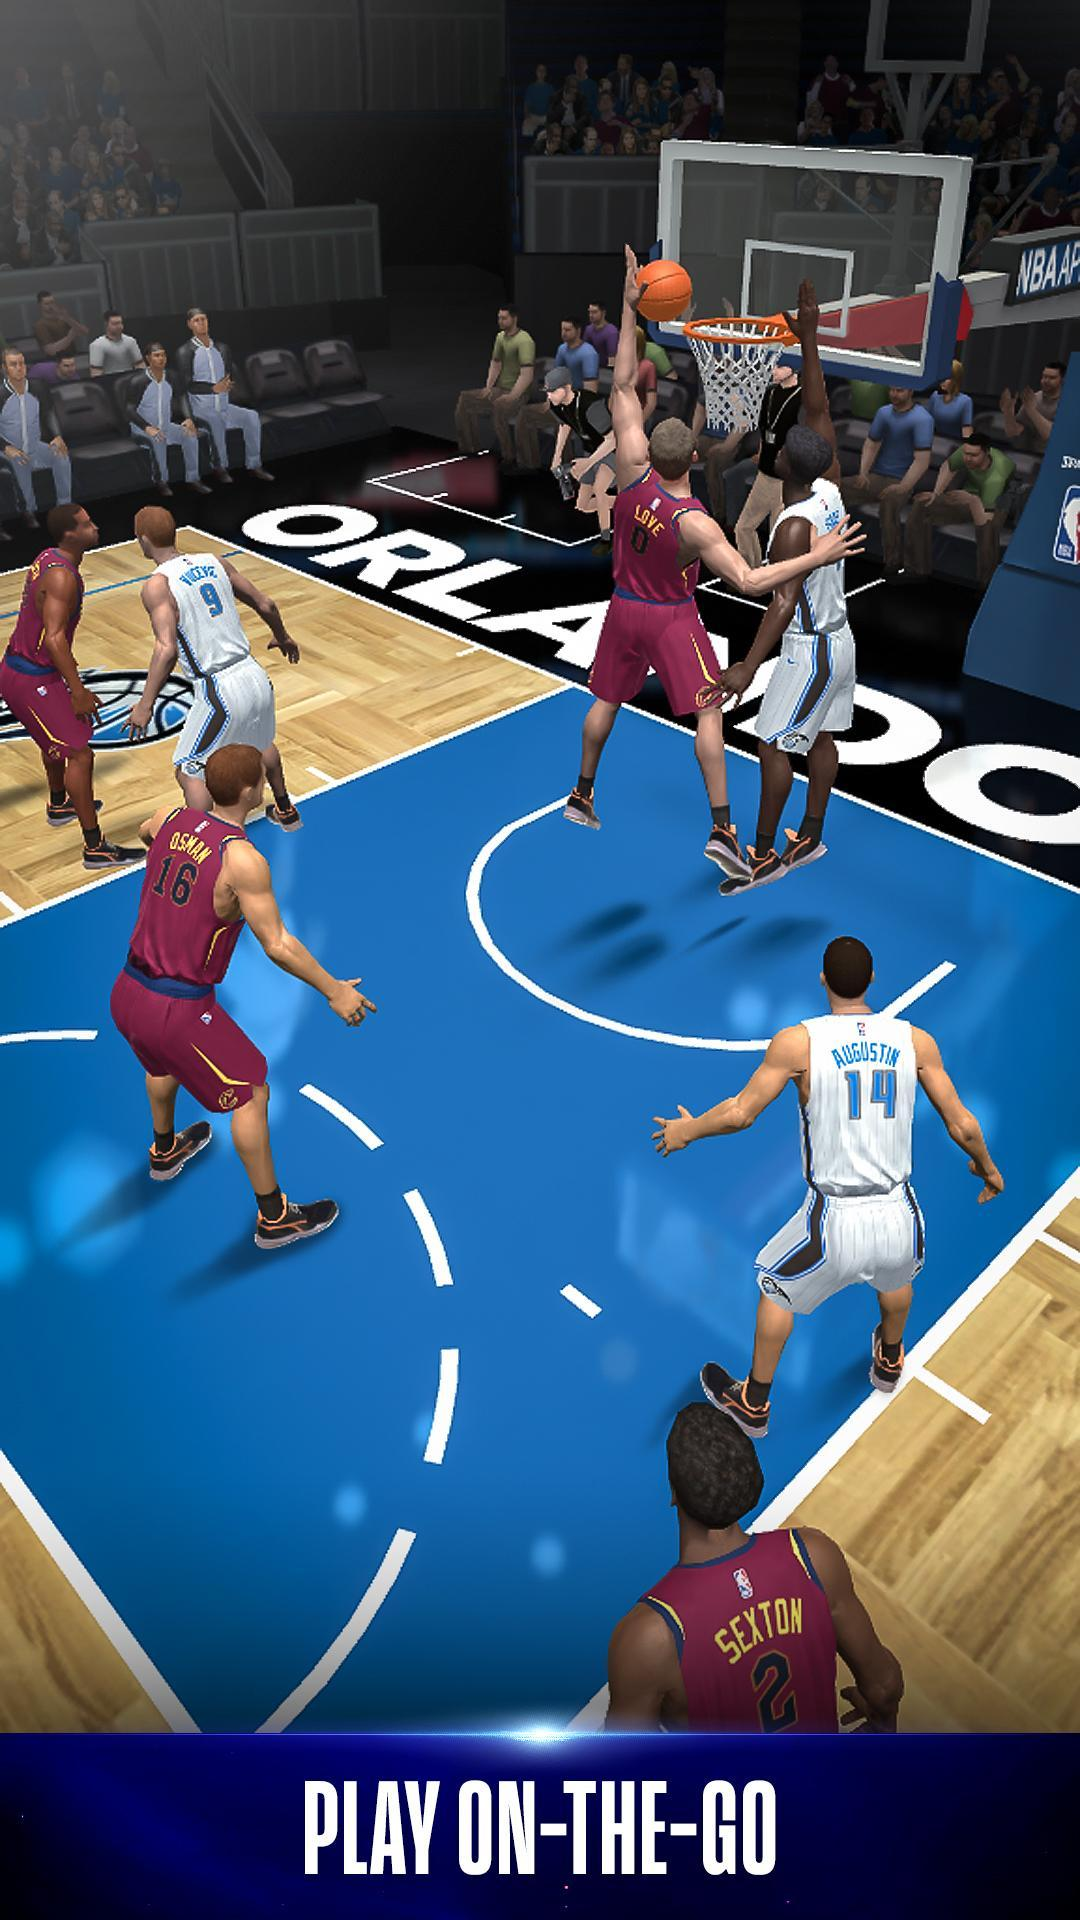 NBA NOW Mobile Basketball Game 1.5.4 Screenshot 13